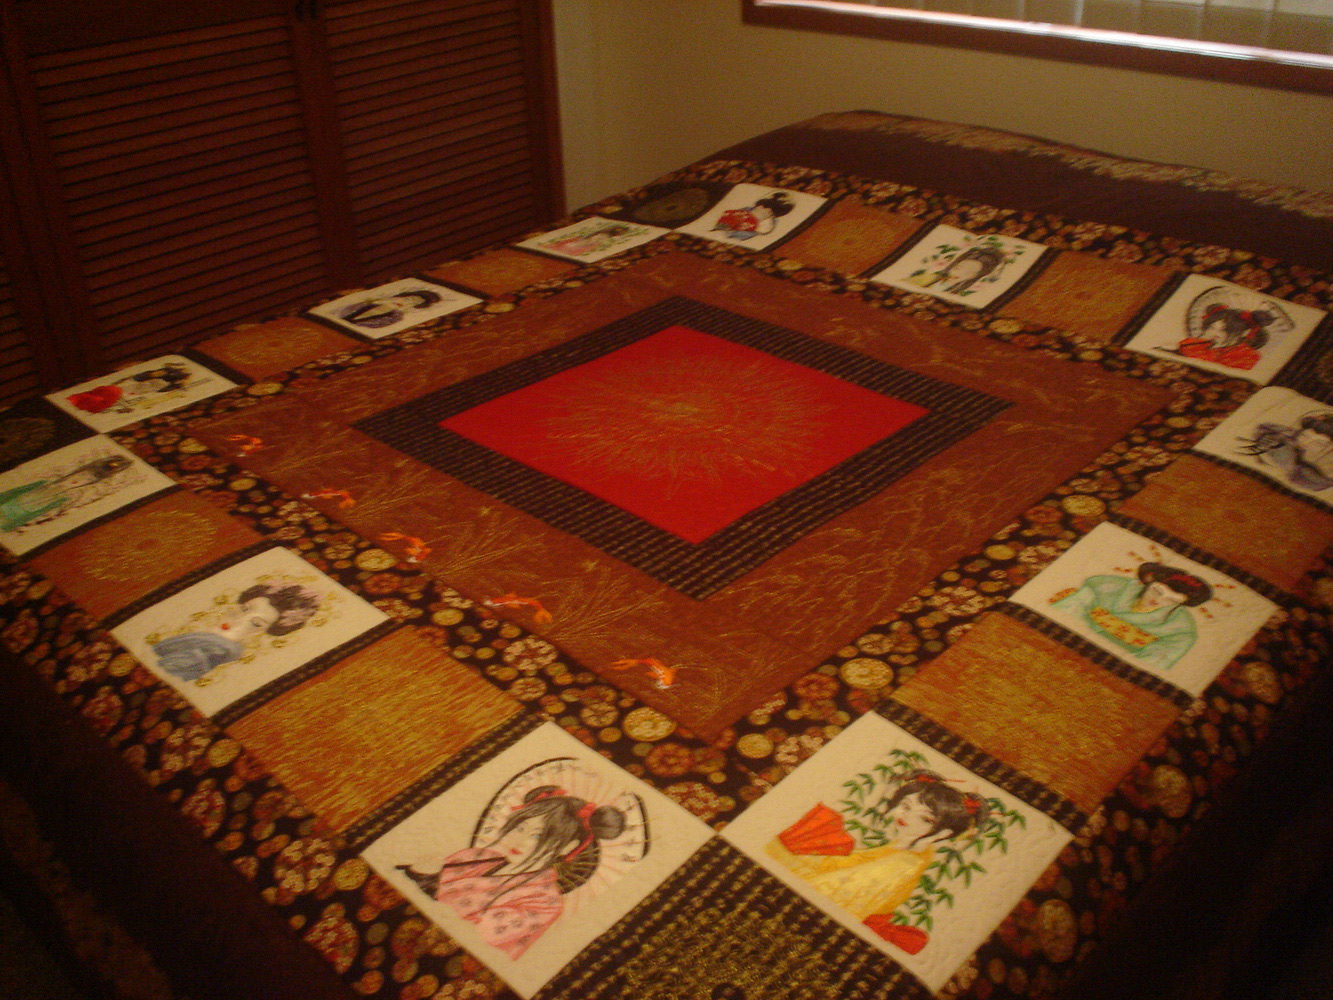 Geisha designs on quilt embroidered